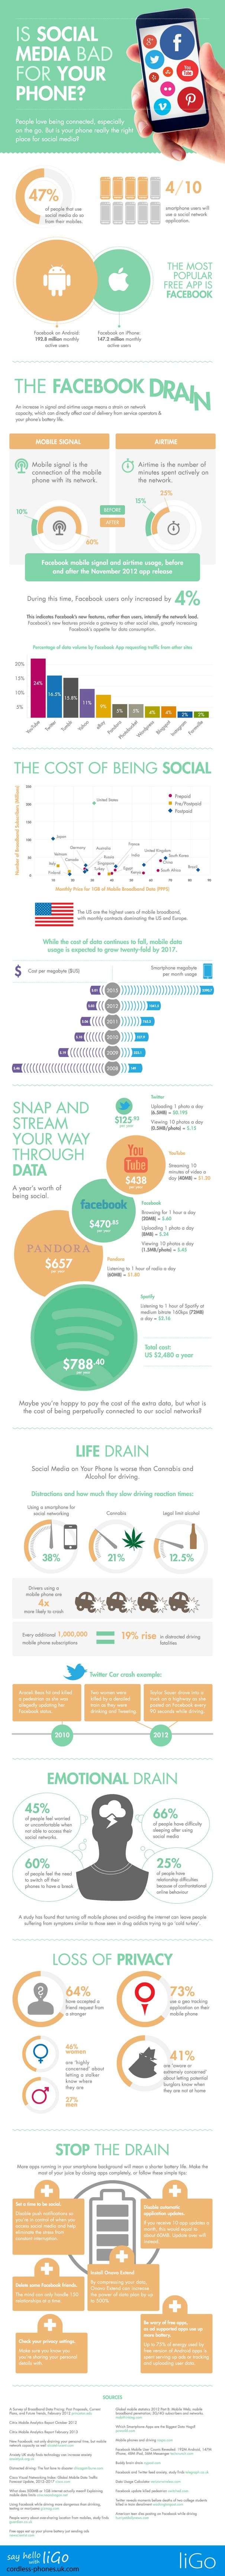 Is Social Media Bad For Your Phone Infographic3